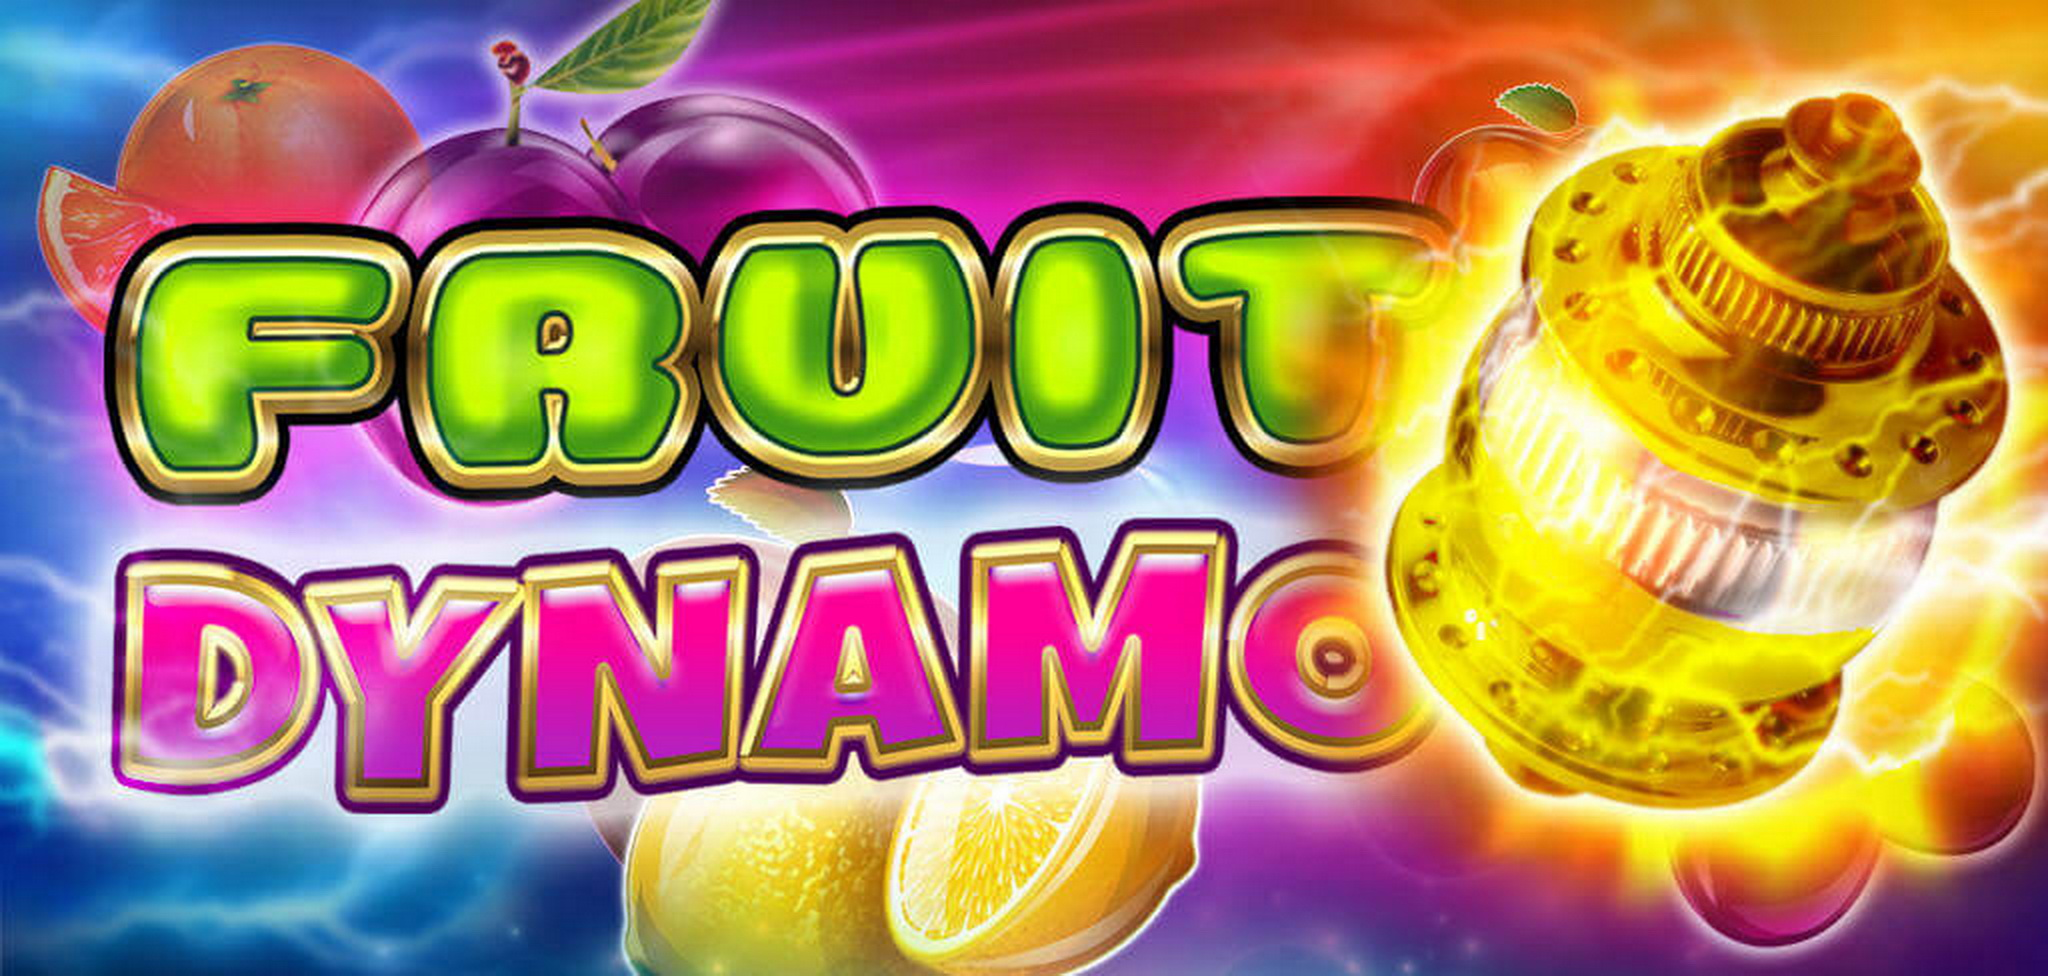 The Fruit Dynamo Online Slot Demo Game by Casino Technology